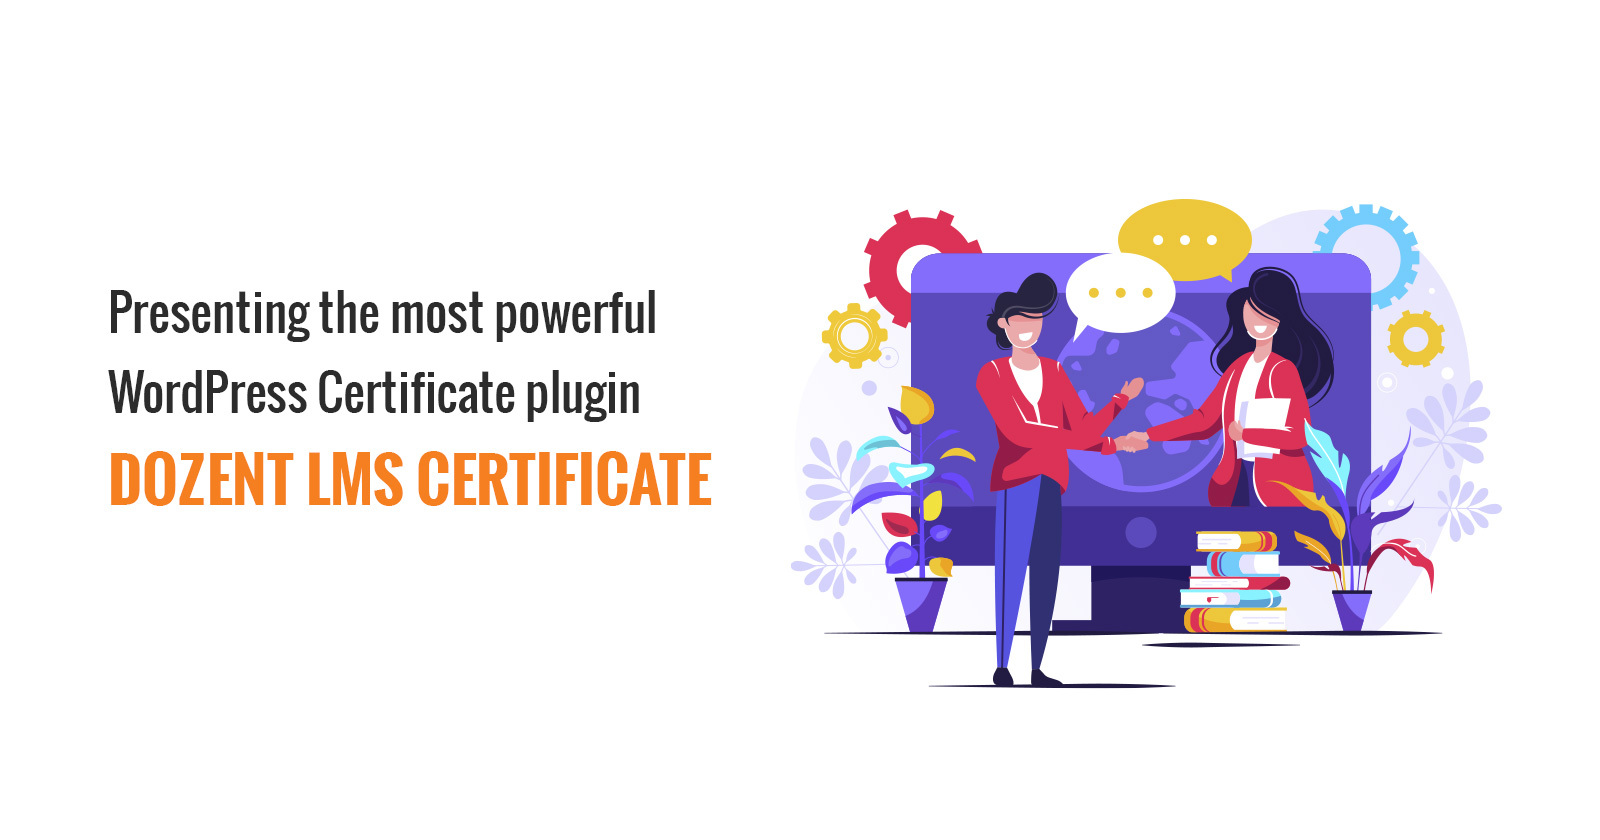 Introducing the most powerful WordPress certificate plugin Dozent LMS Certificate